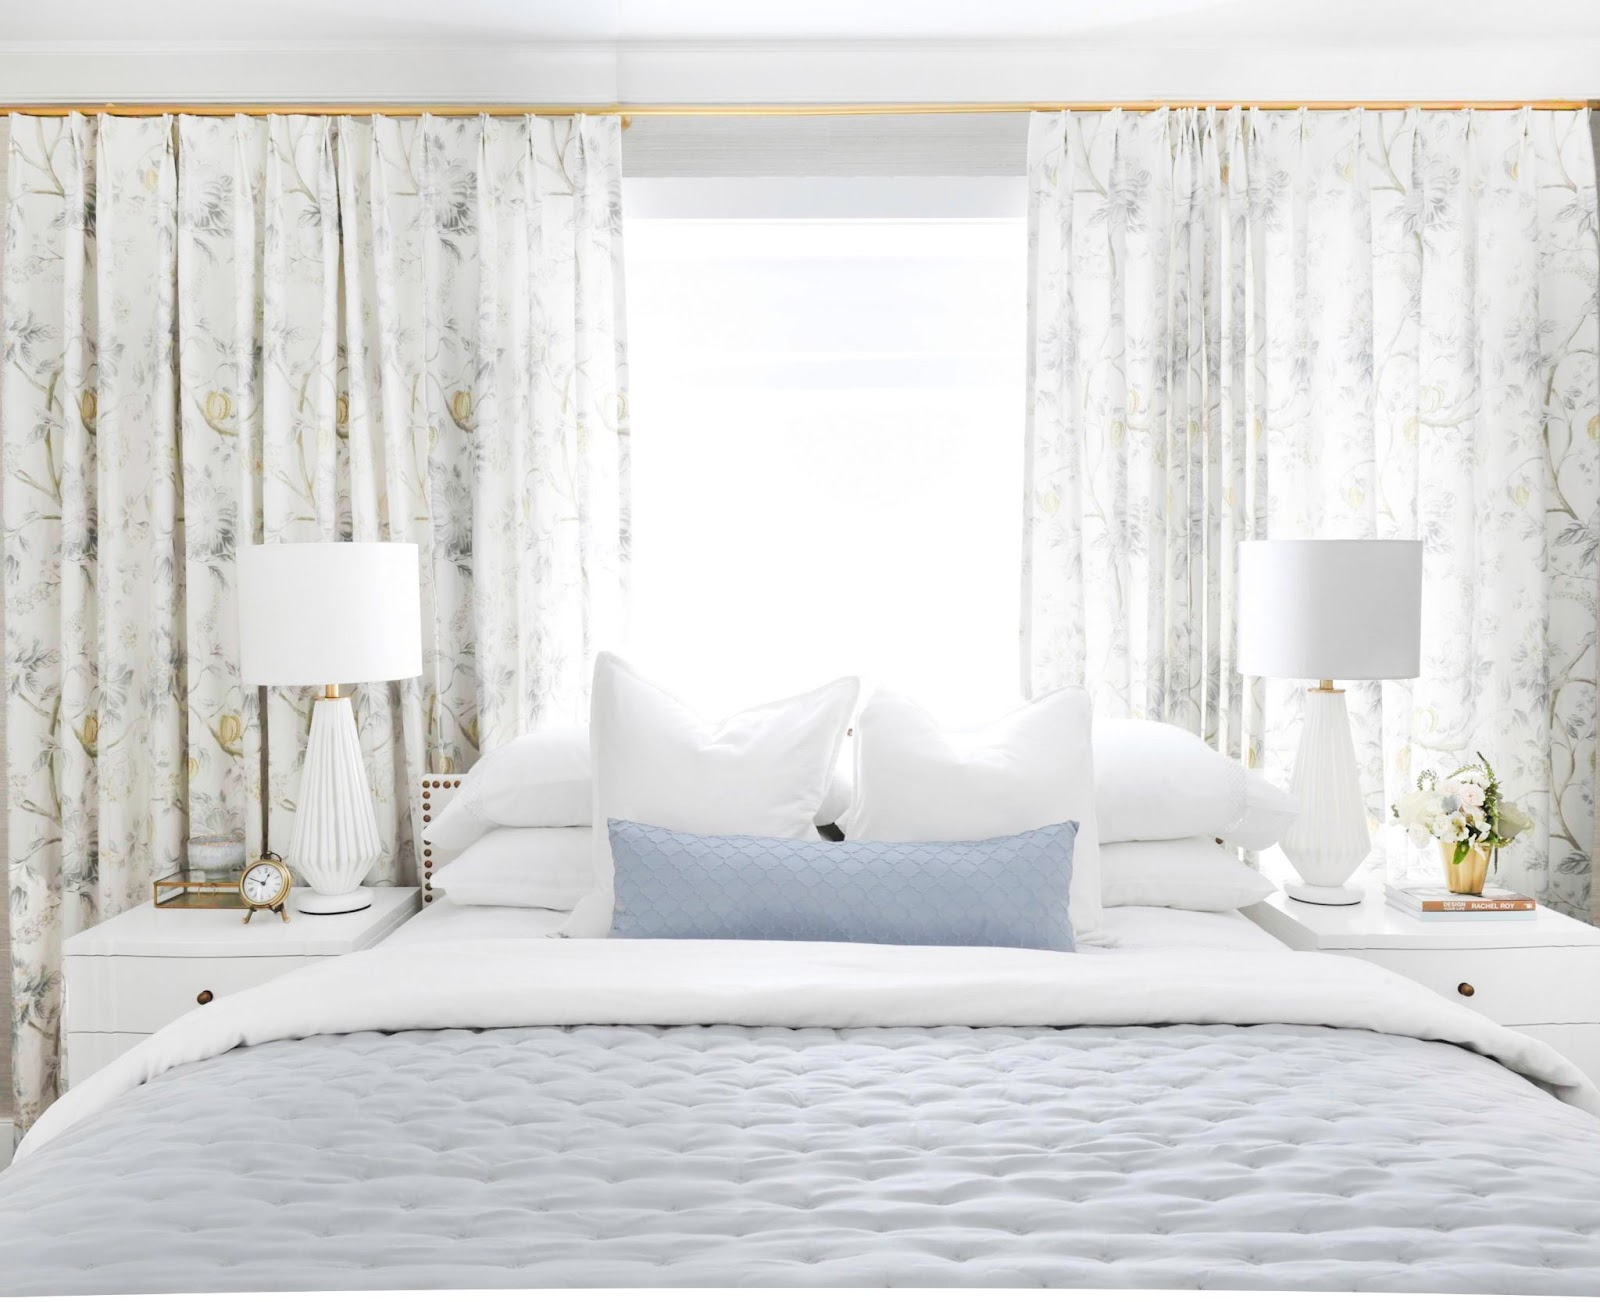 maria-decotiis-vancouver-ca-invest-in-interior-designer-soft-light-bedroom-with-large-windows-and-drapes